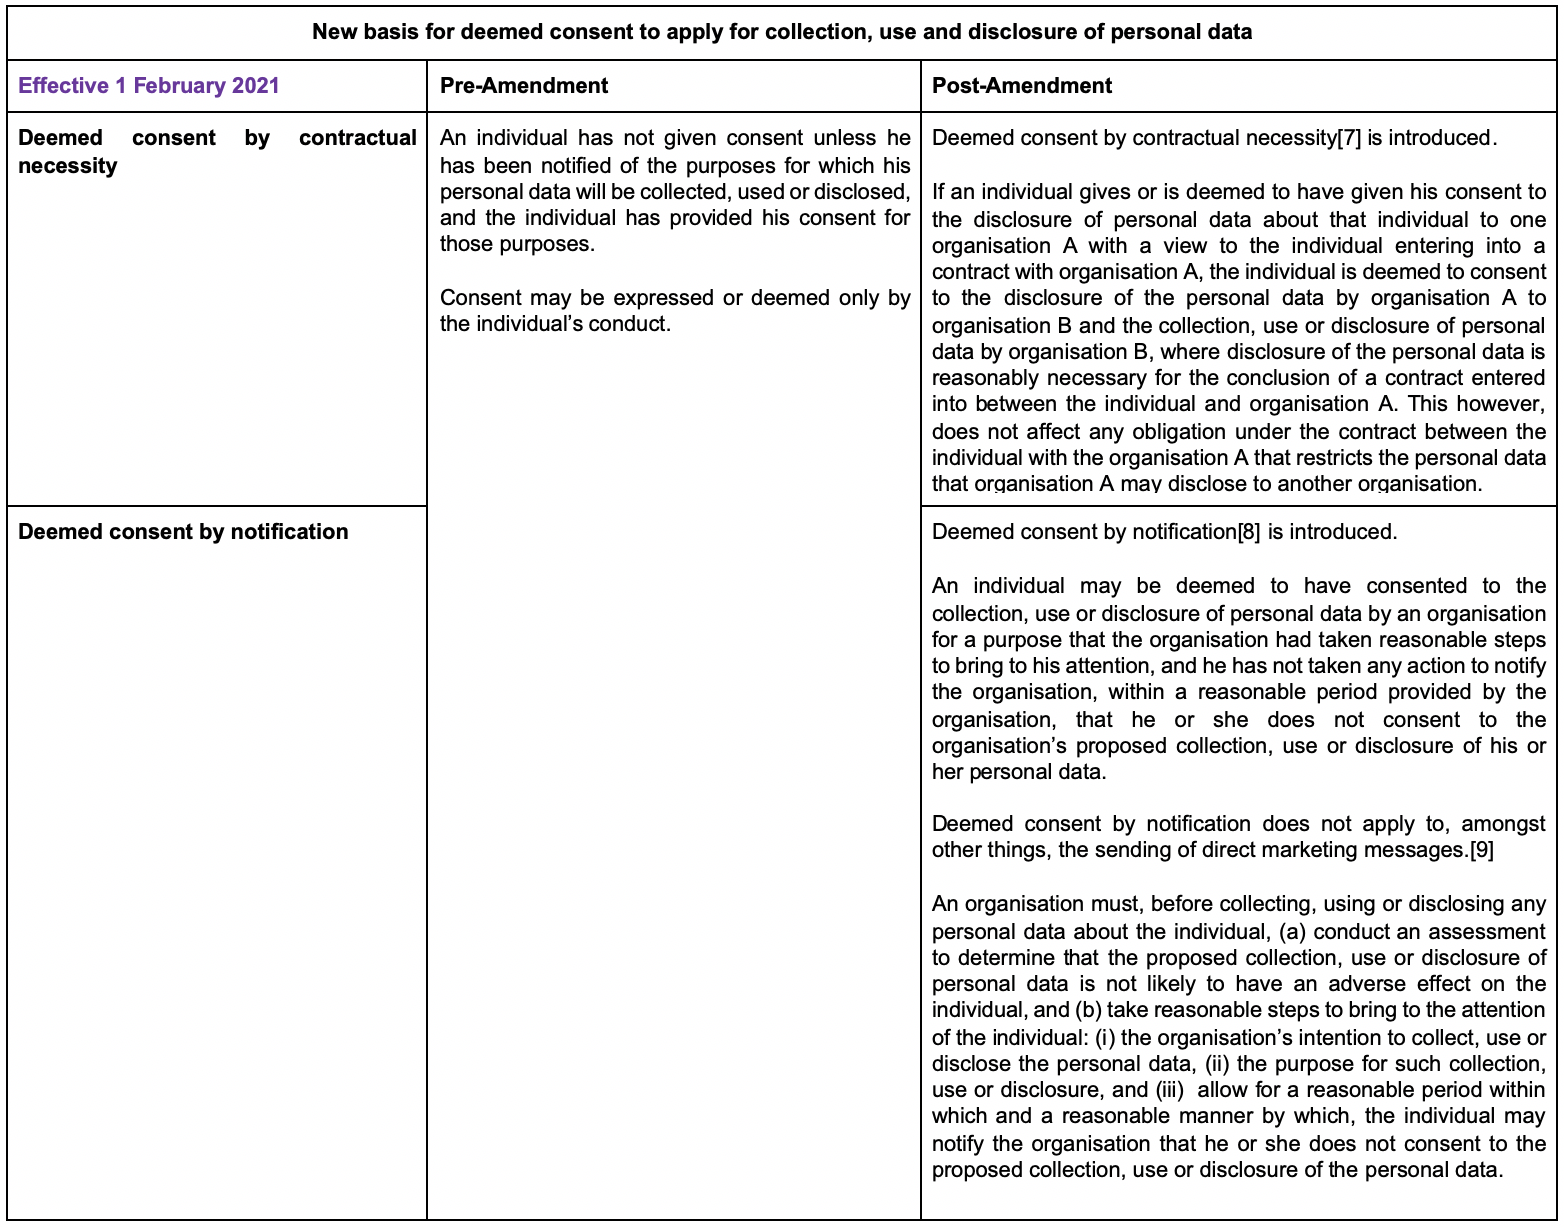 New basis for deemed consent to apply for collection, use and disclosure of personal data